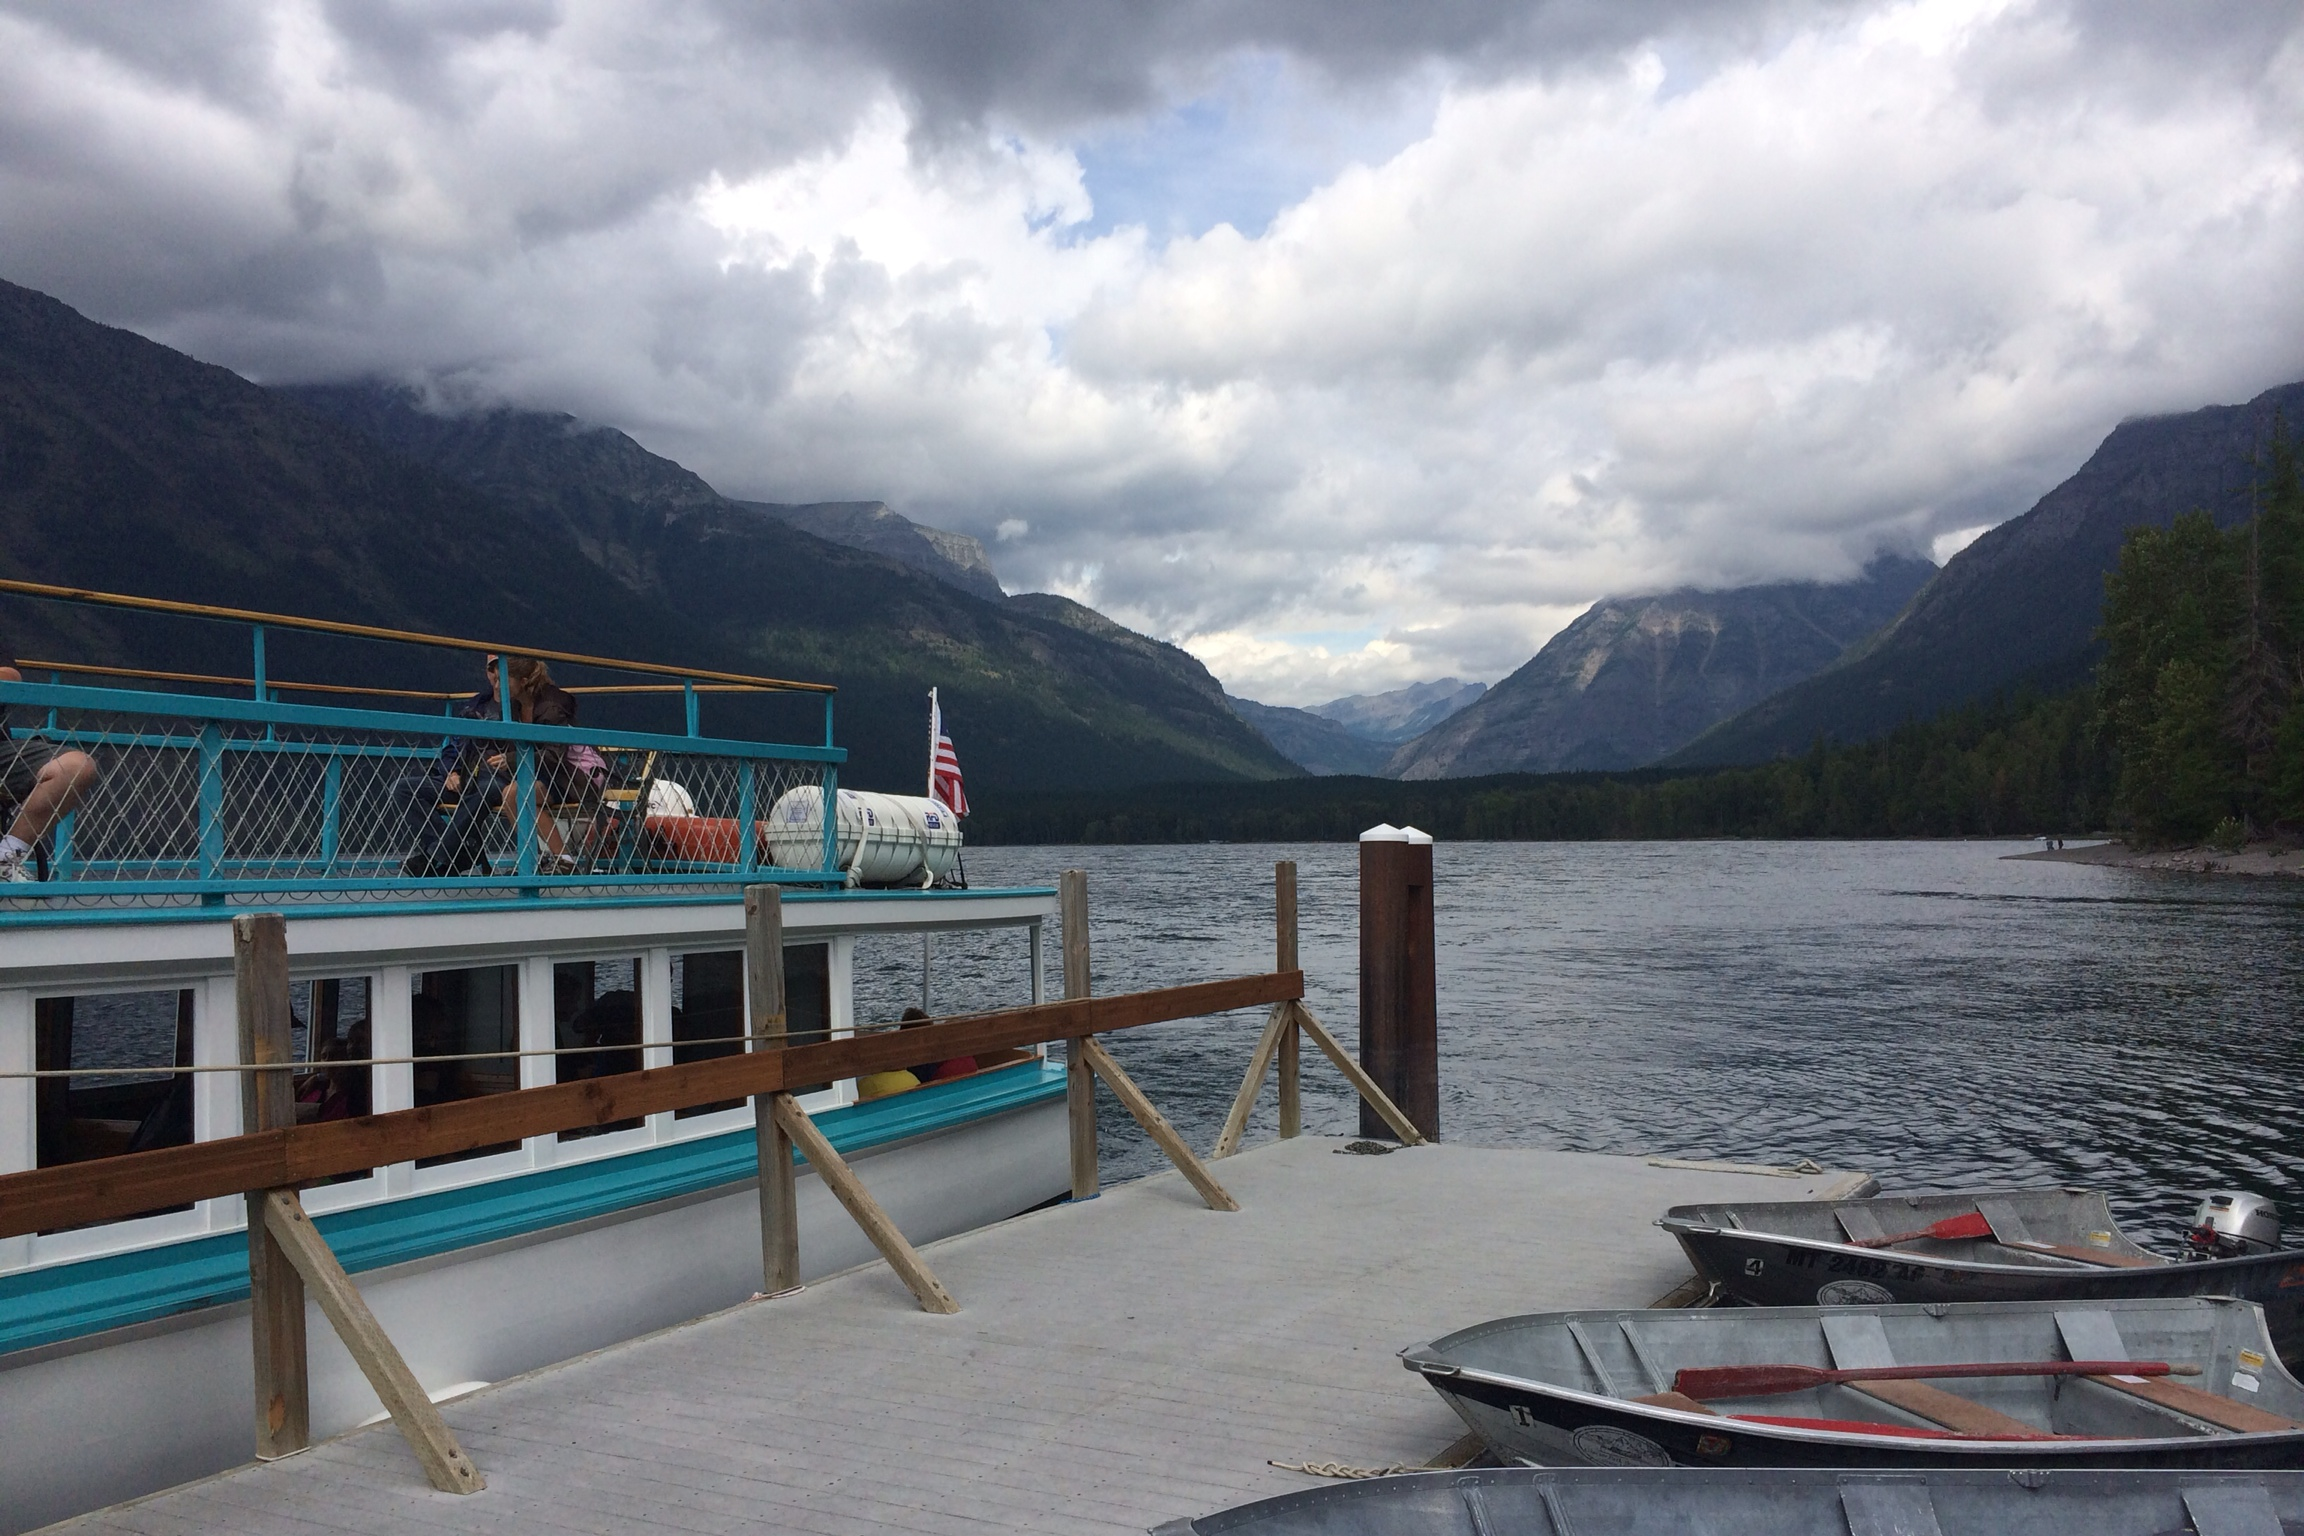 Lake McDonald Boat Cruise